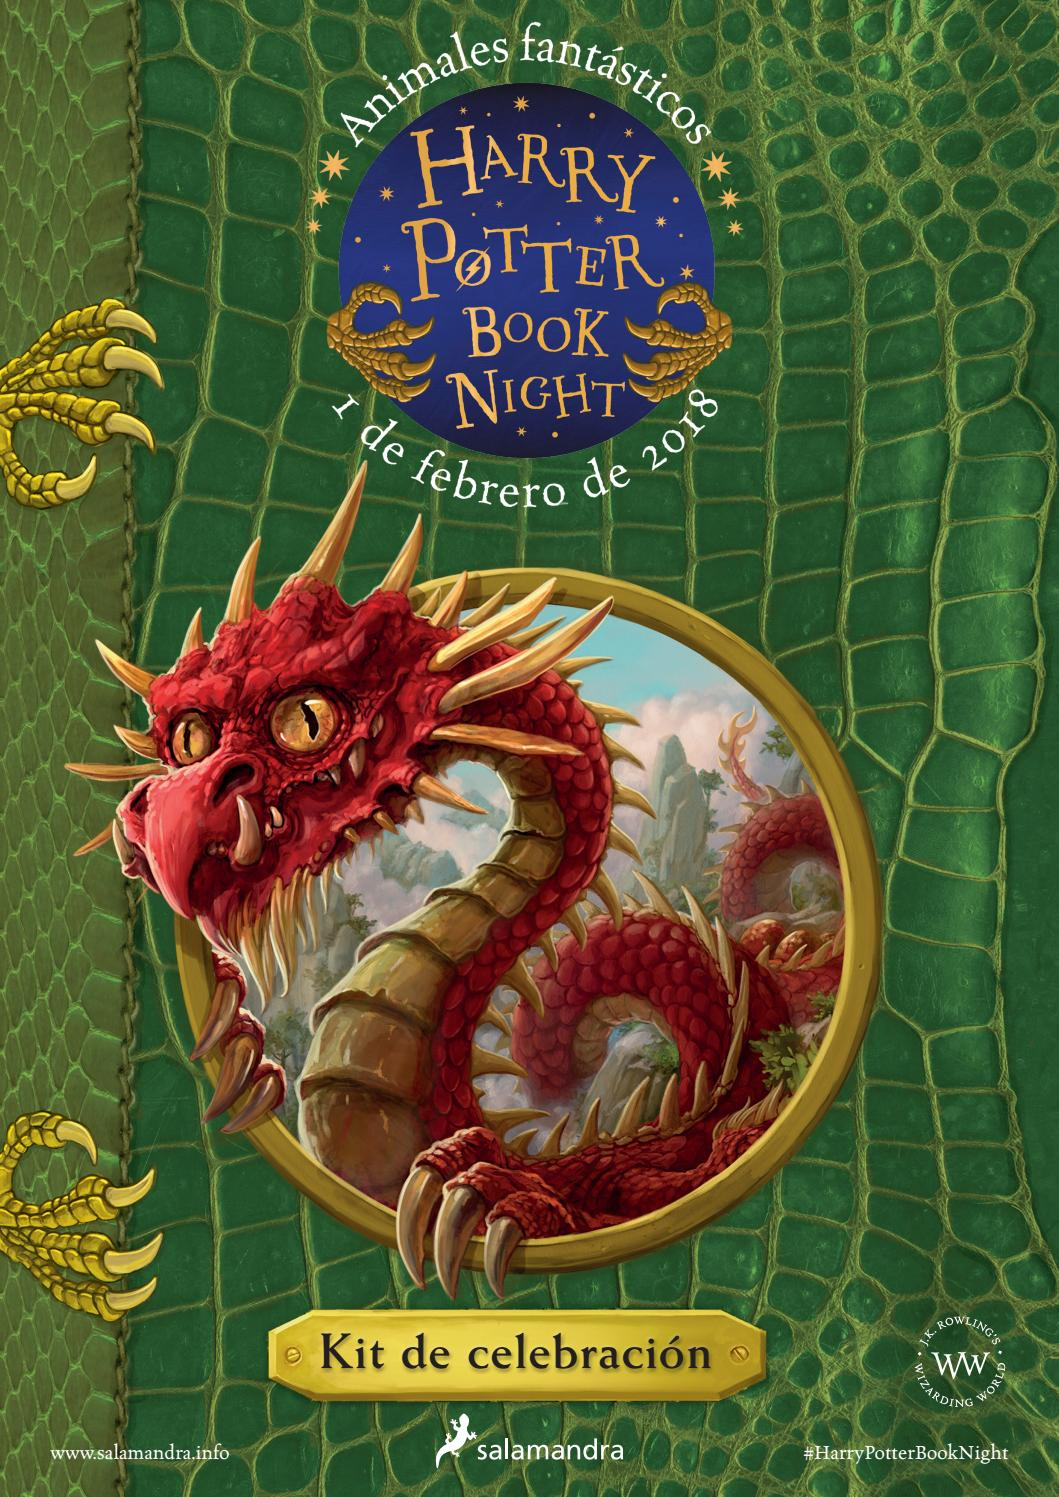 Paginas De Los Libros De Harry Potter Harry Potter Book Night 2018 By Ediciones Salamandra Issuu